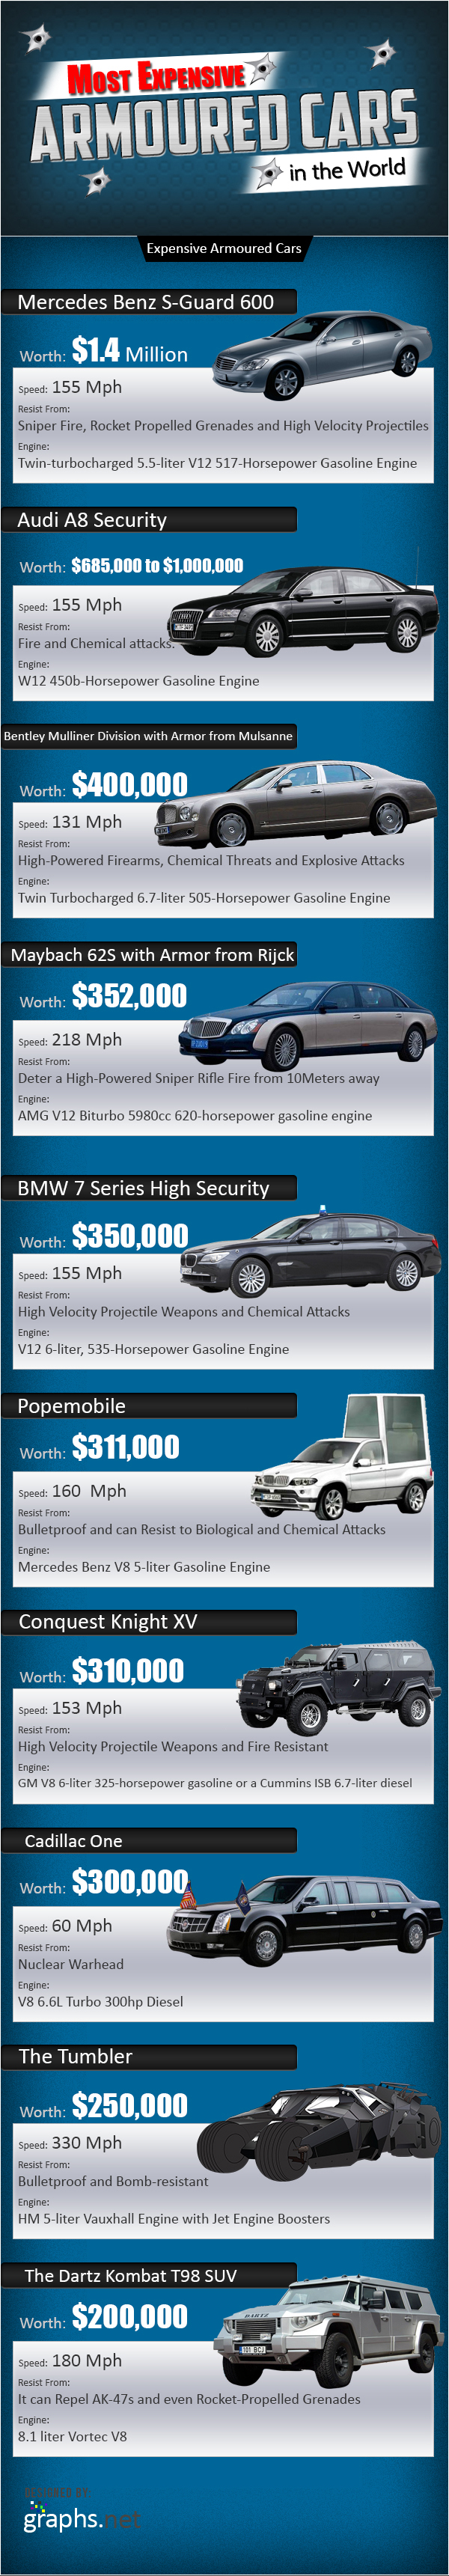 Most Expensive Armoured Cars